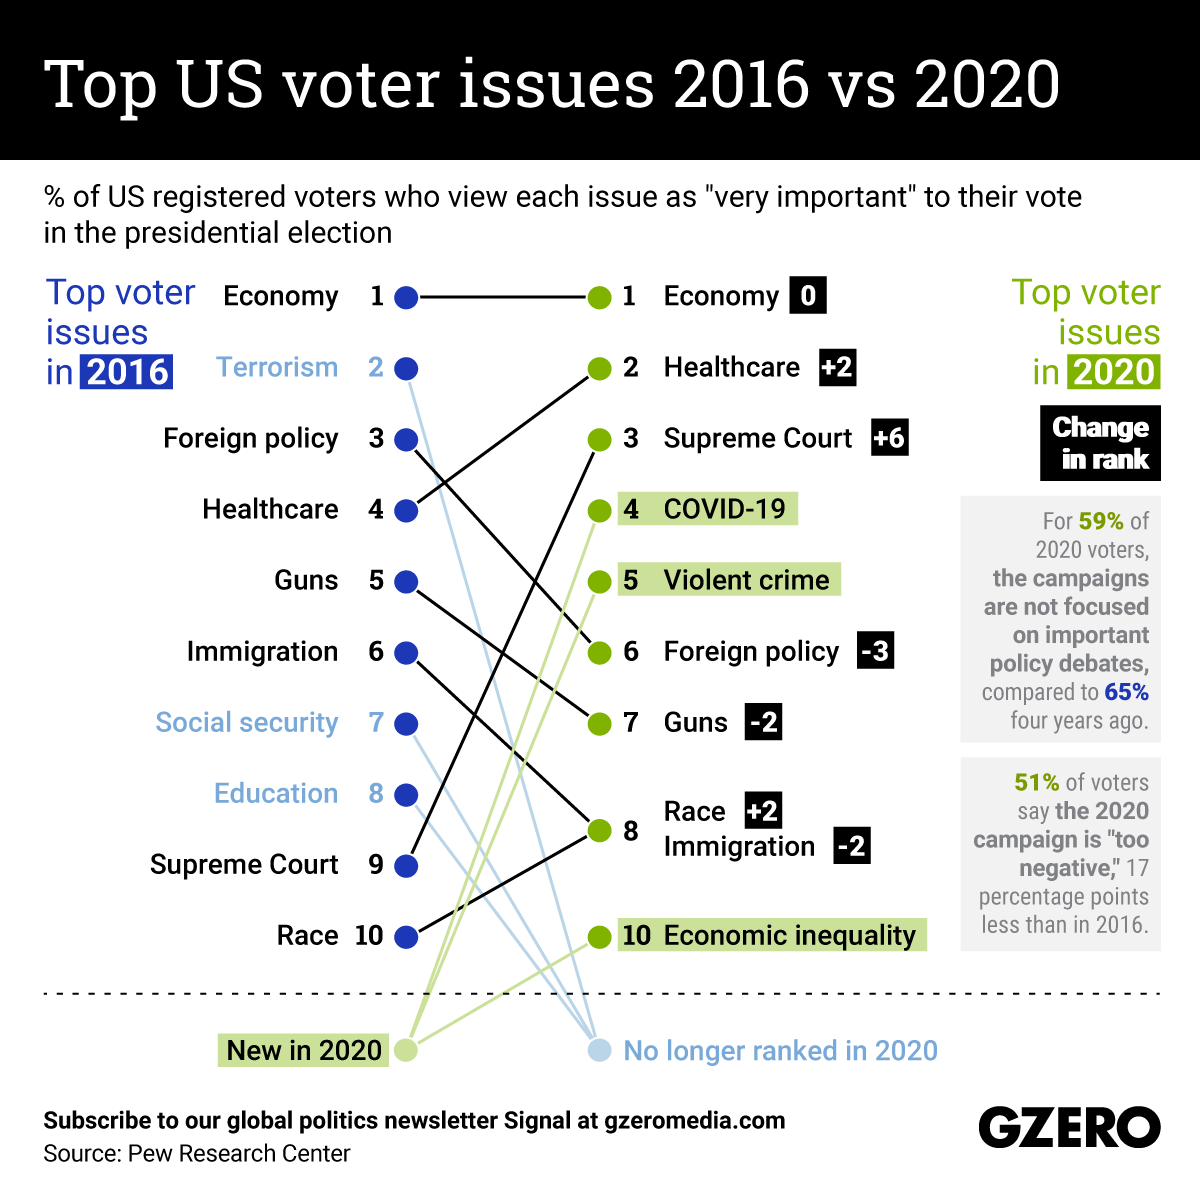 The Graphic Truth: Top US voter issues 2016 vs 2020